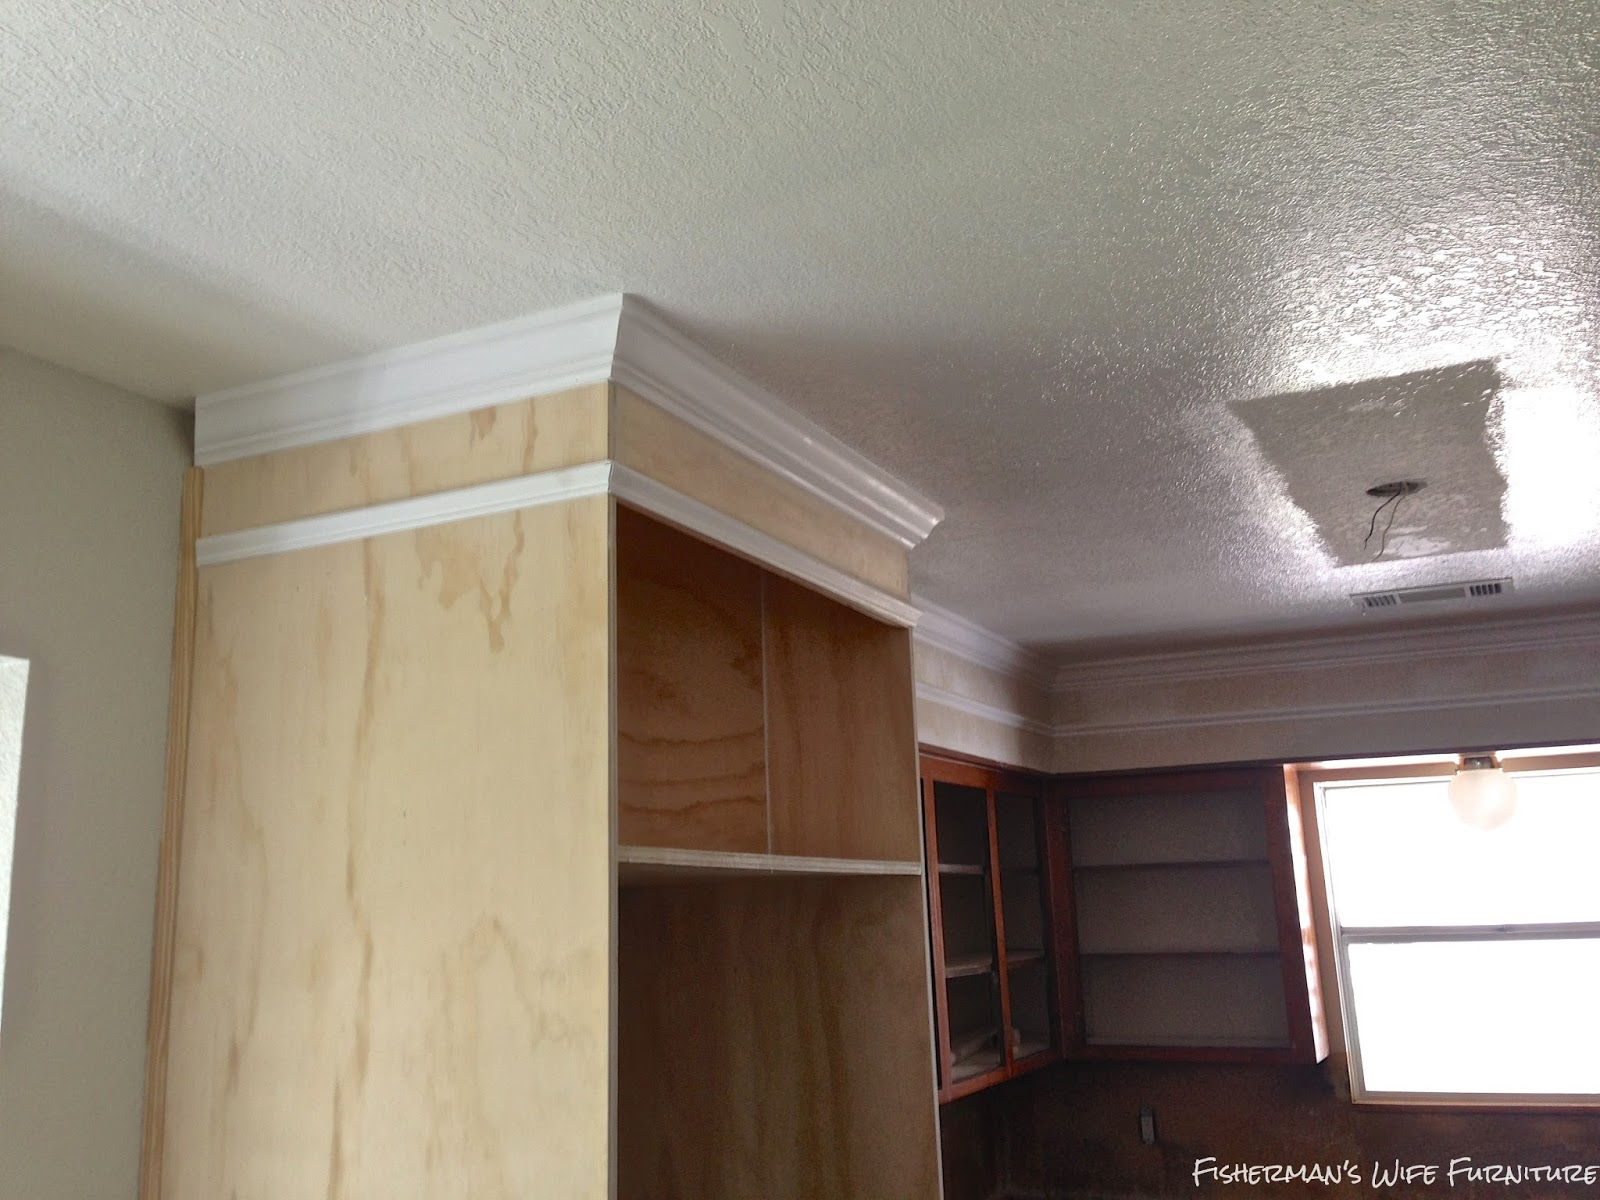 Fisherman 39 s wife furniture covering fur down the space for Bulkhead over kitchen cabinets